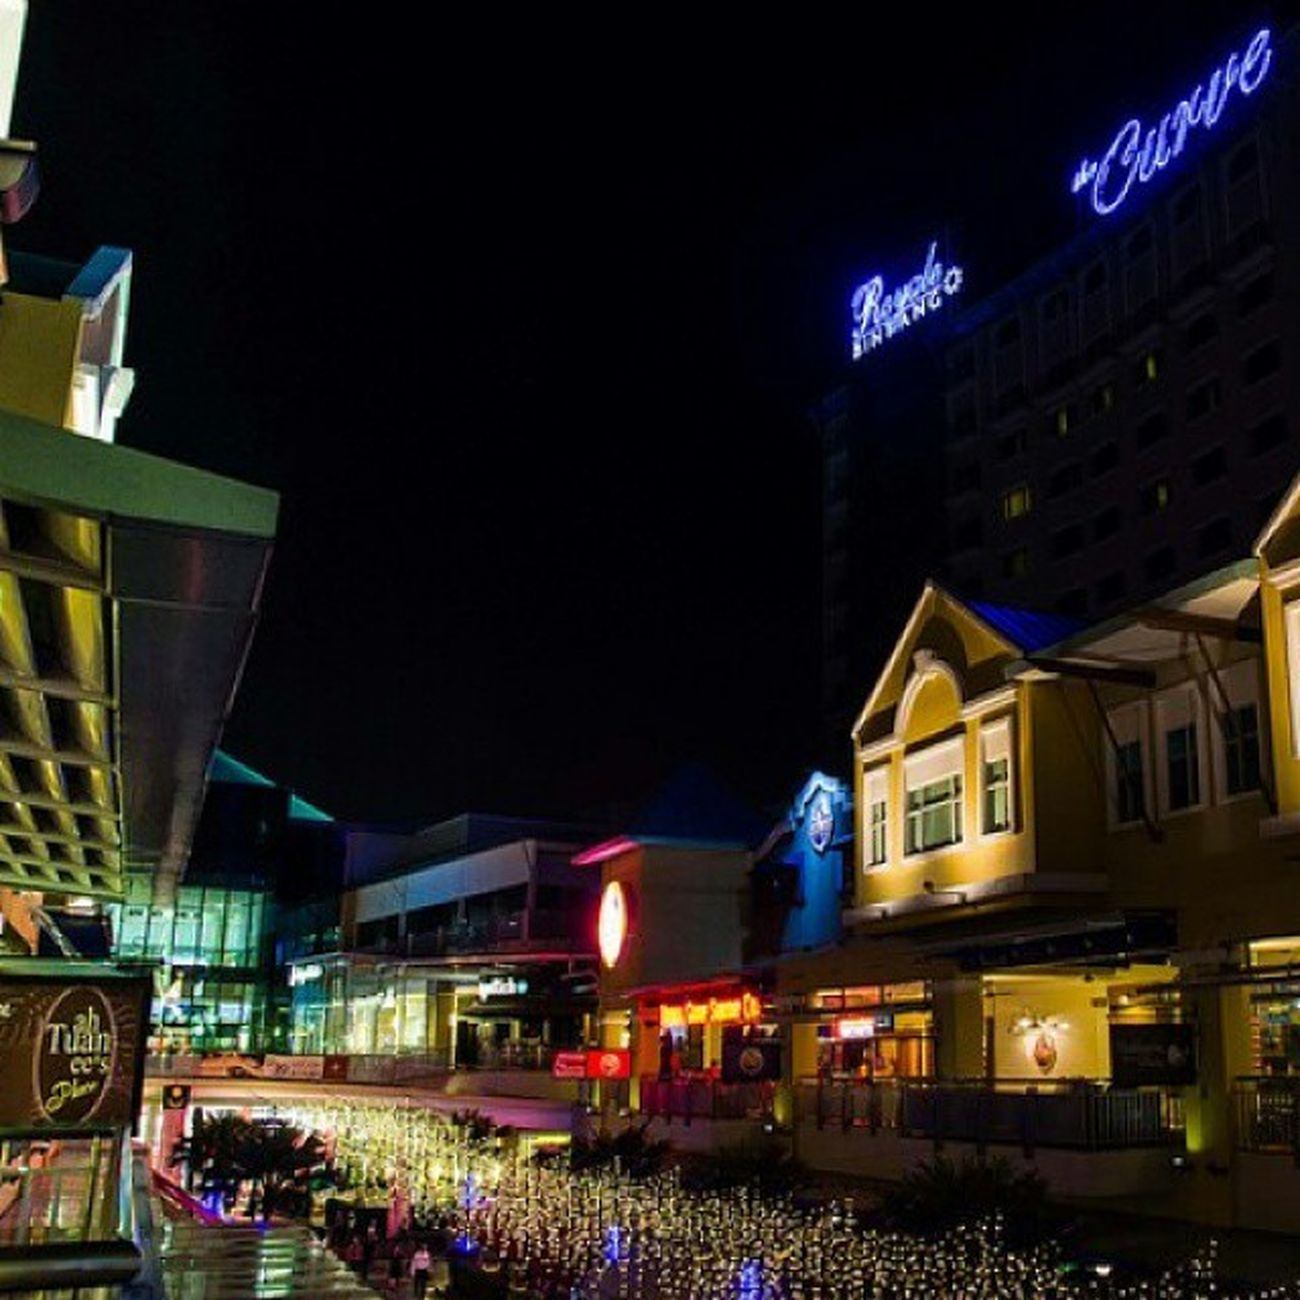 Lights Lowlight Damansara Thecurve Streetphotography Shopping Food Cinema Colorful Building